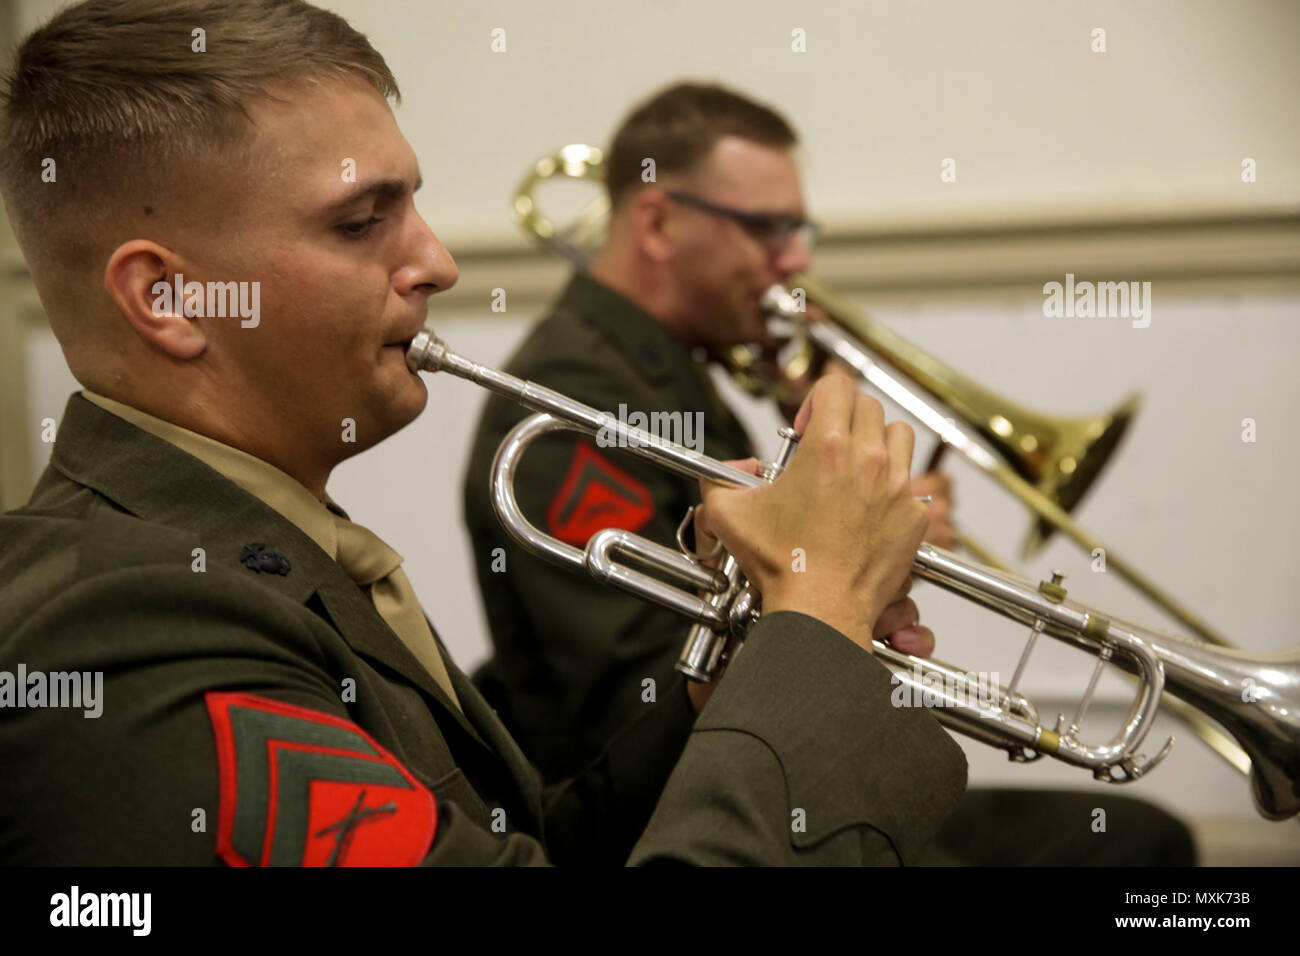 A Marine band member plays the trumpet during the Purple Star Memorial Ceremony at Camp Lejeune, N.C., May 5th, 2017. Marines conducted the Purple Star Memorial to honor the fallen Marines and sailors of Exercise Purple Star. The Marines are with 2nd Battalion, 8th Marine Regiment, 2nd Marine Division. - Stock Image